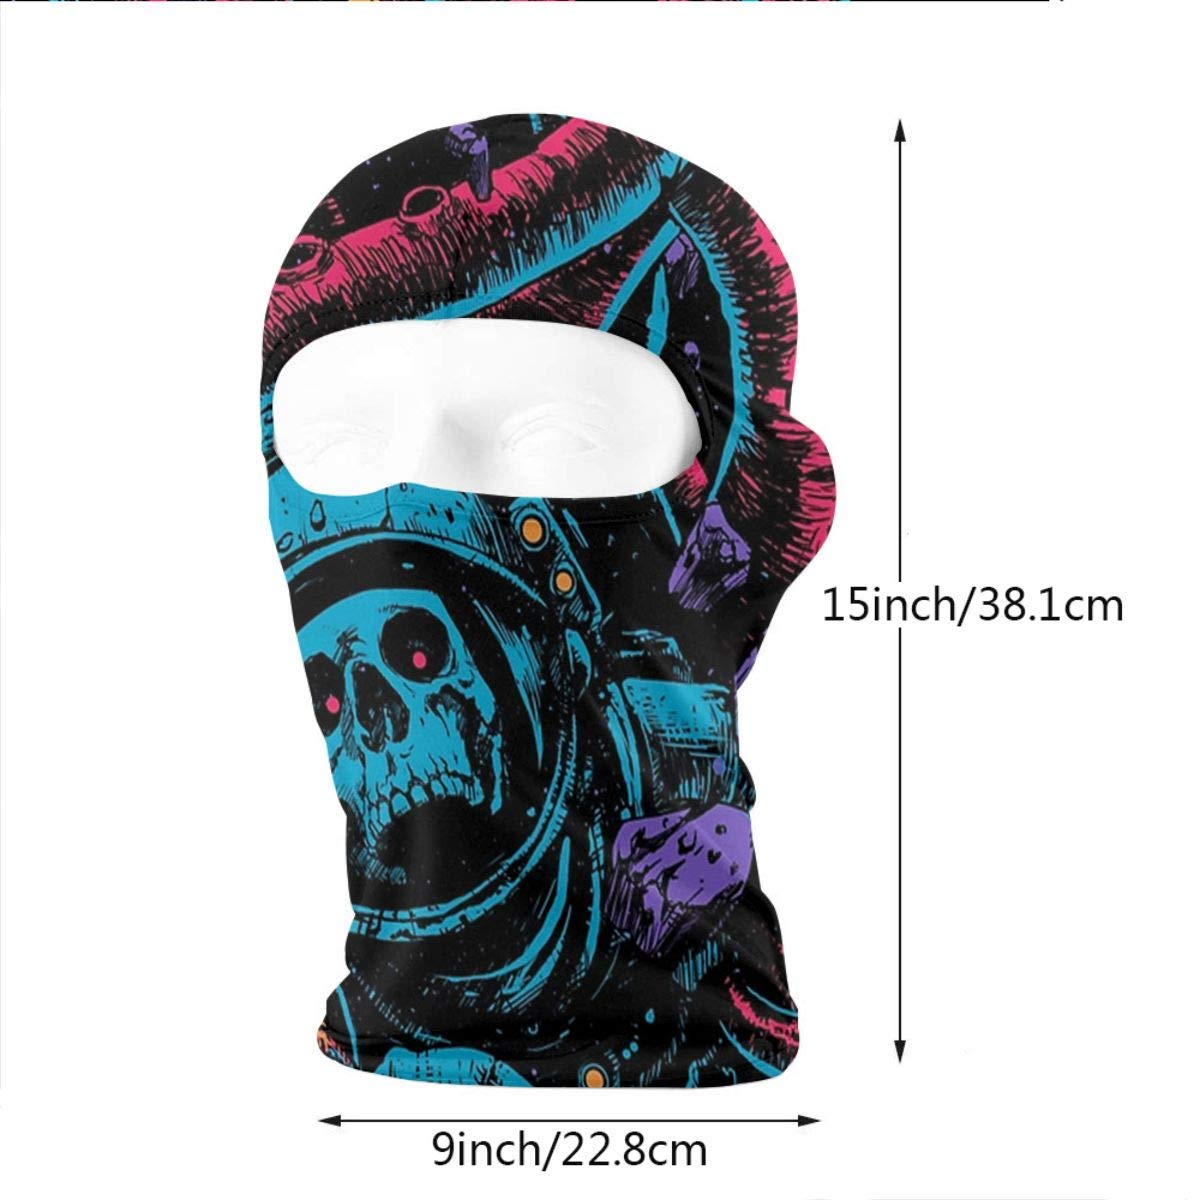 Balaclava Full Face Mask Red Octopus Astronaut Windproof UV Protection Neck Hood Ski Mask for Motorcycle Cycling Outdoor Sports